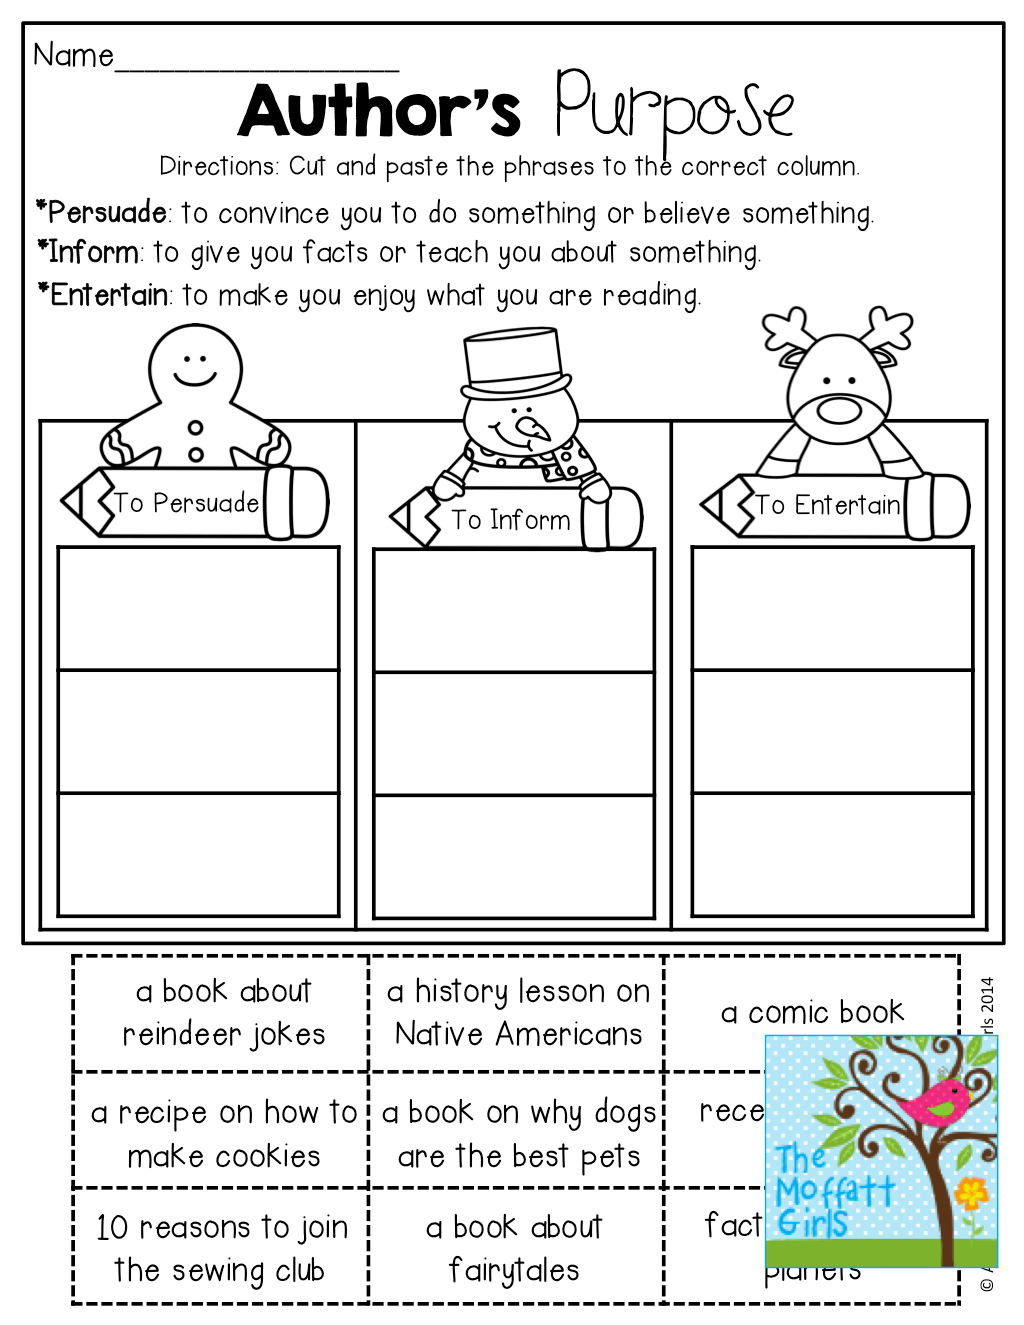 Authors Purpose Worksheets 7th Grade